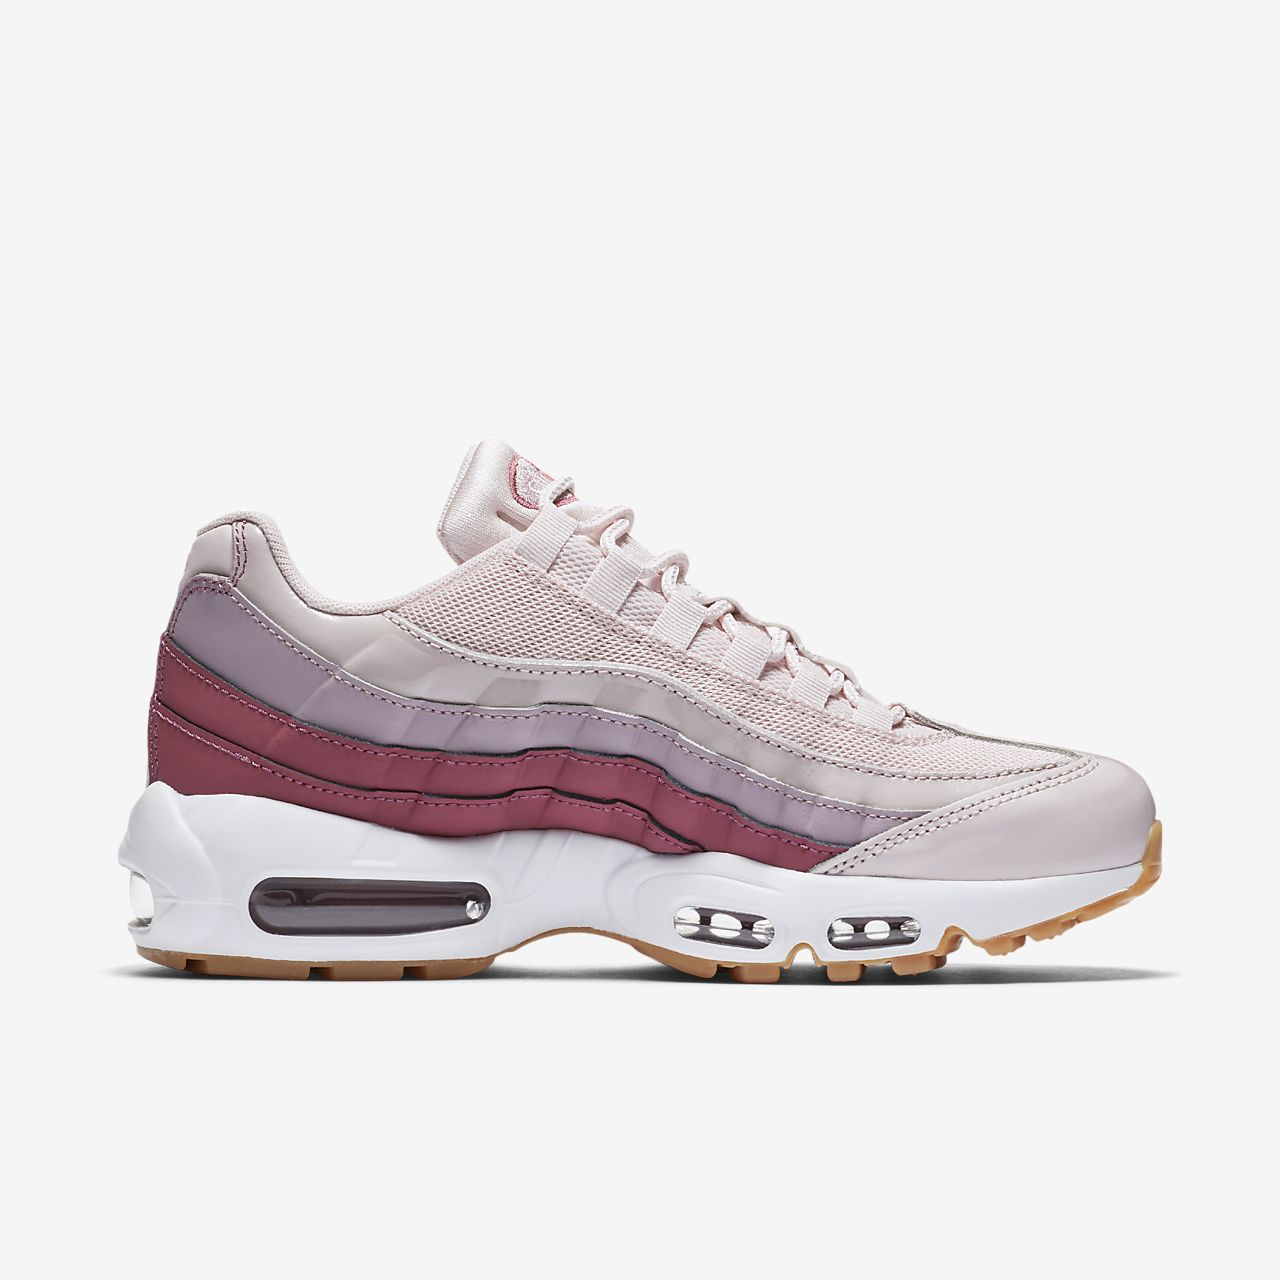 new style 39117 8e246 Nike Air Max 95 OG – Chaussure pour Femme